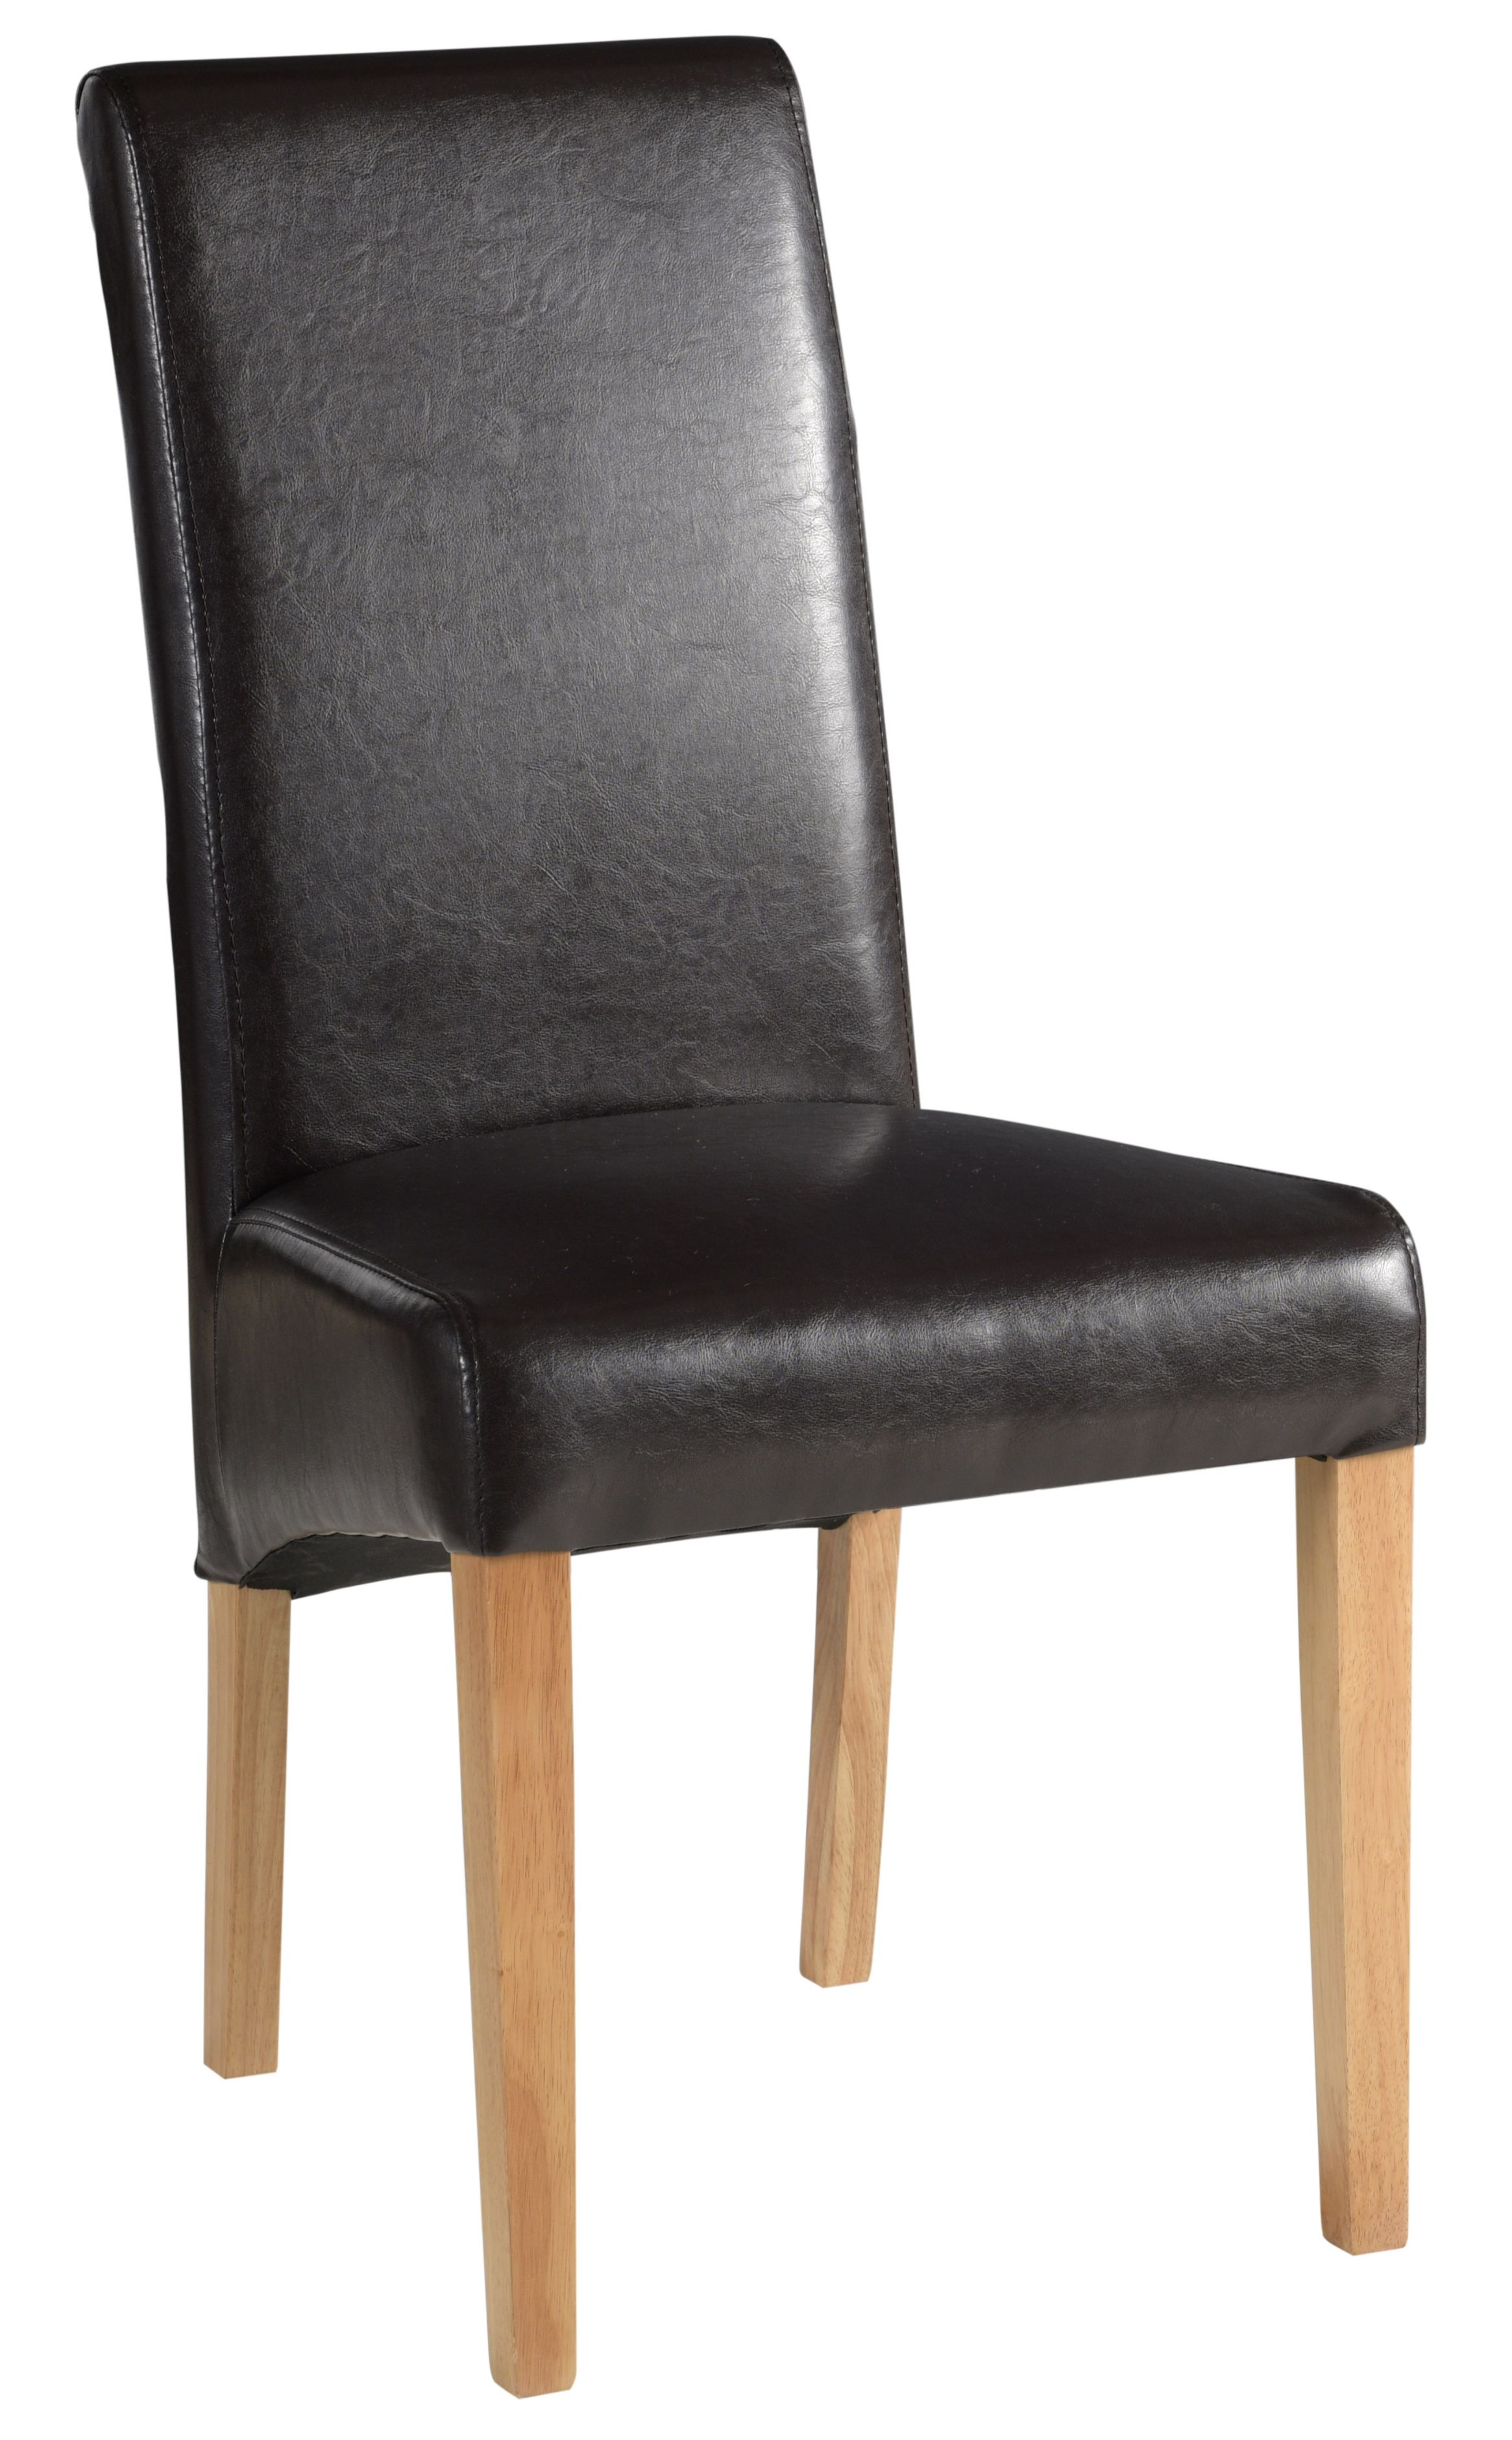 BEVERLEY OAK Brown Faux Leather Dining Chair